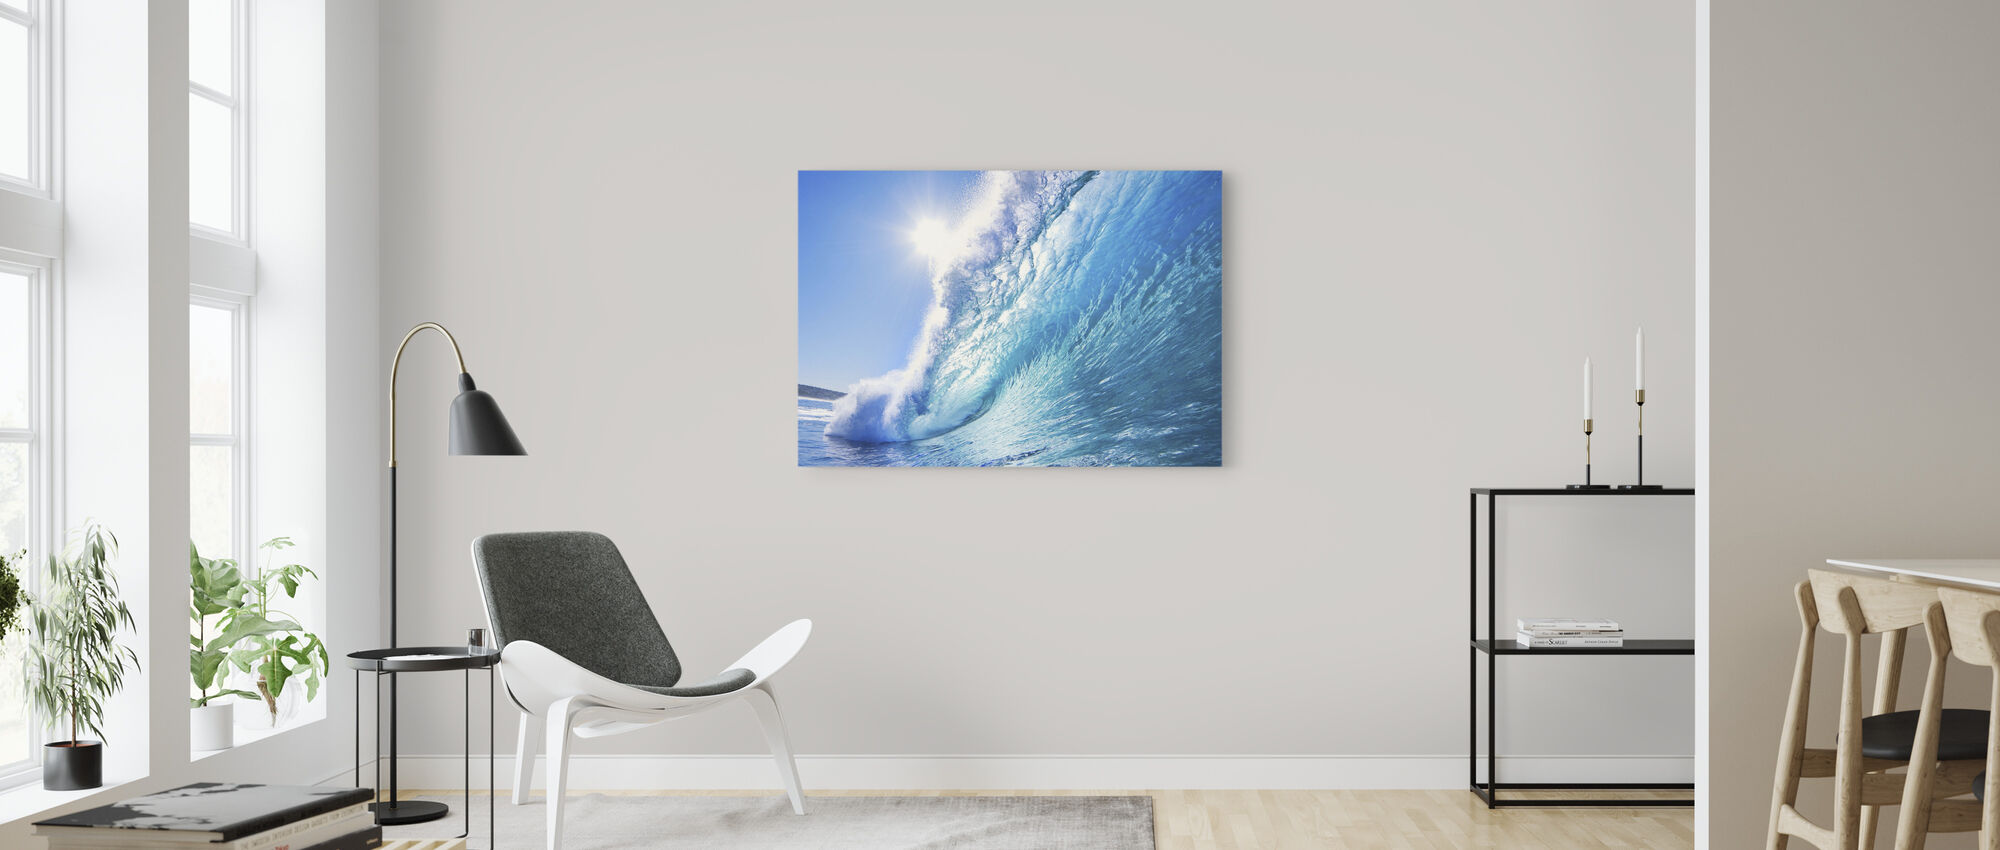 Big Blue Surfing Wave - Canvas print - Living Room